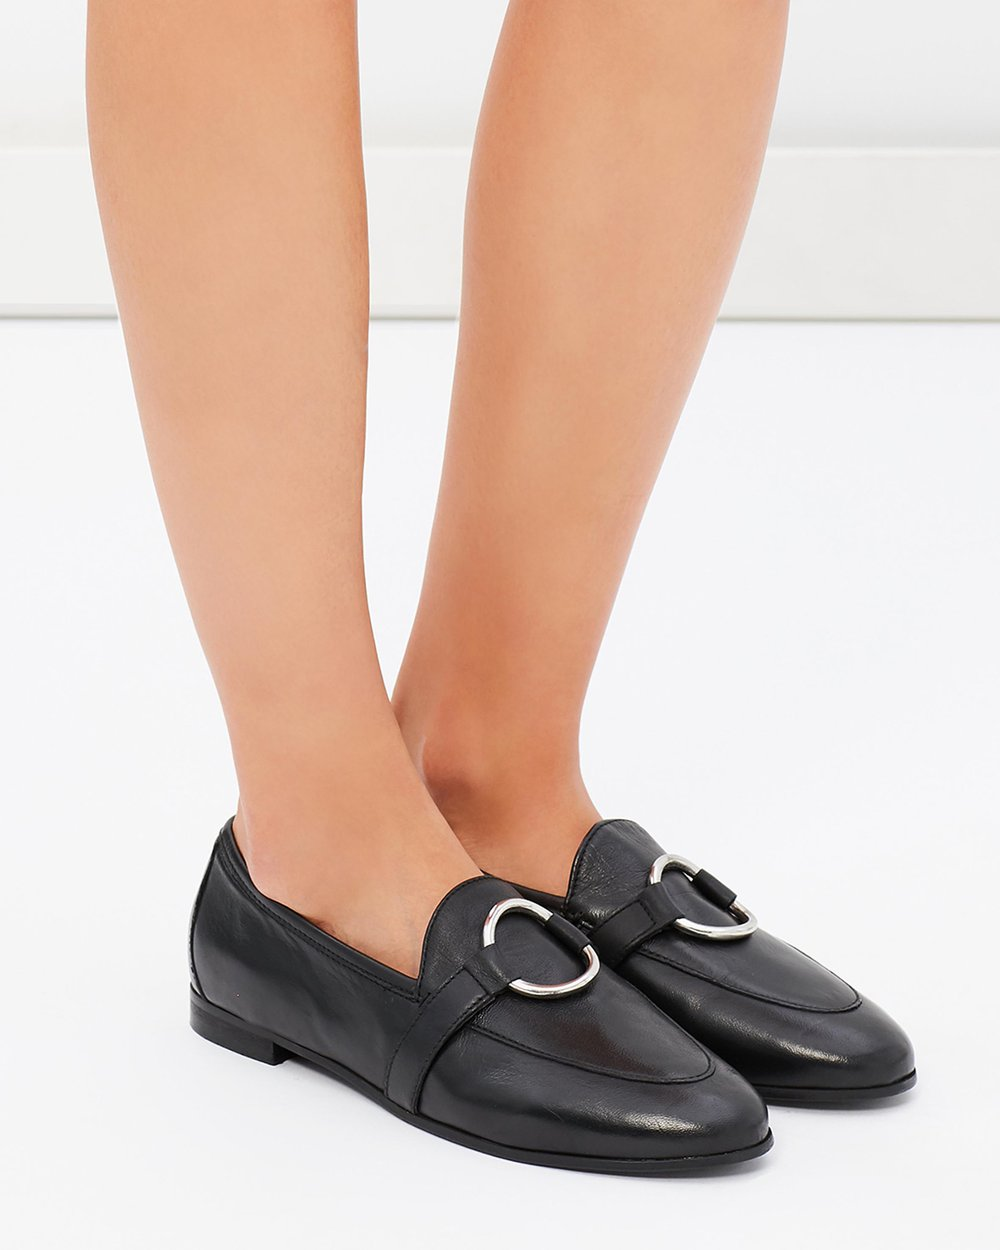 7f55c80874b Kreme Ring Loafers Wide Fit by TOPSHOP Online